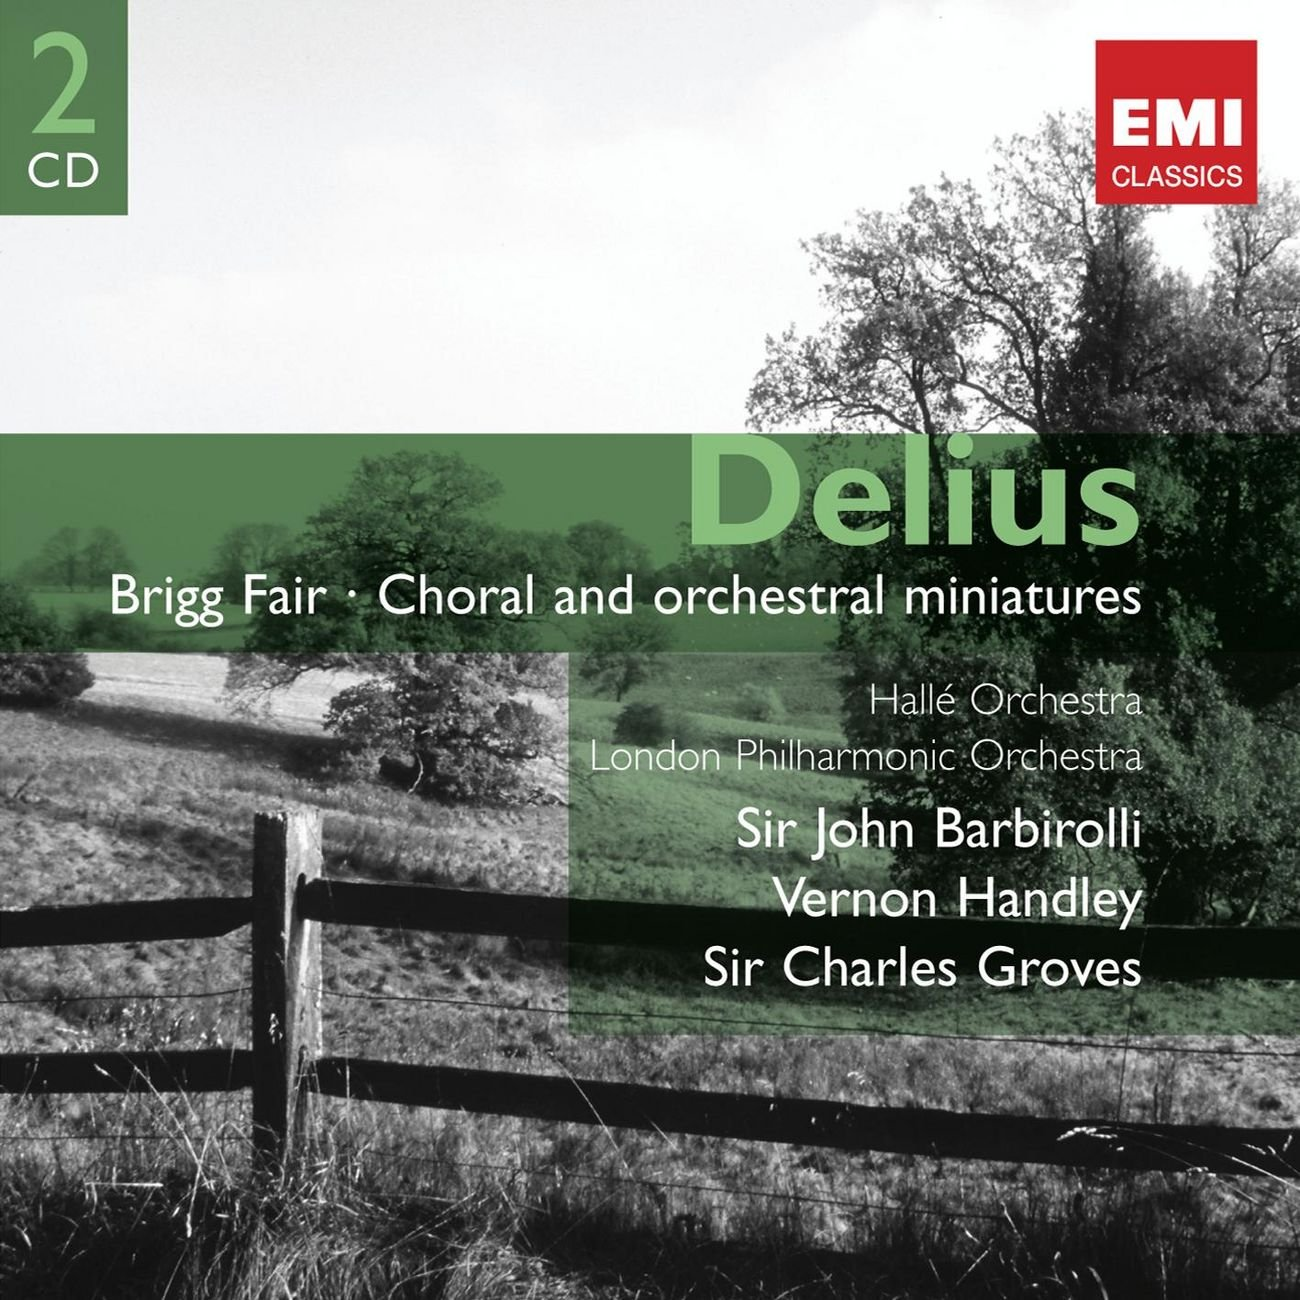 Delius: Brigg Fair, Choral and Orchestral Miniatures (2 CDs) by Warner Classics